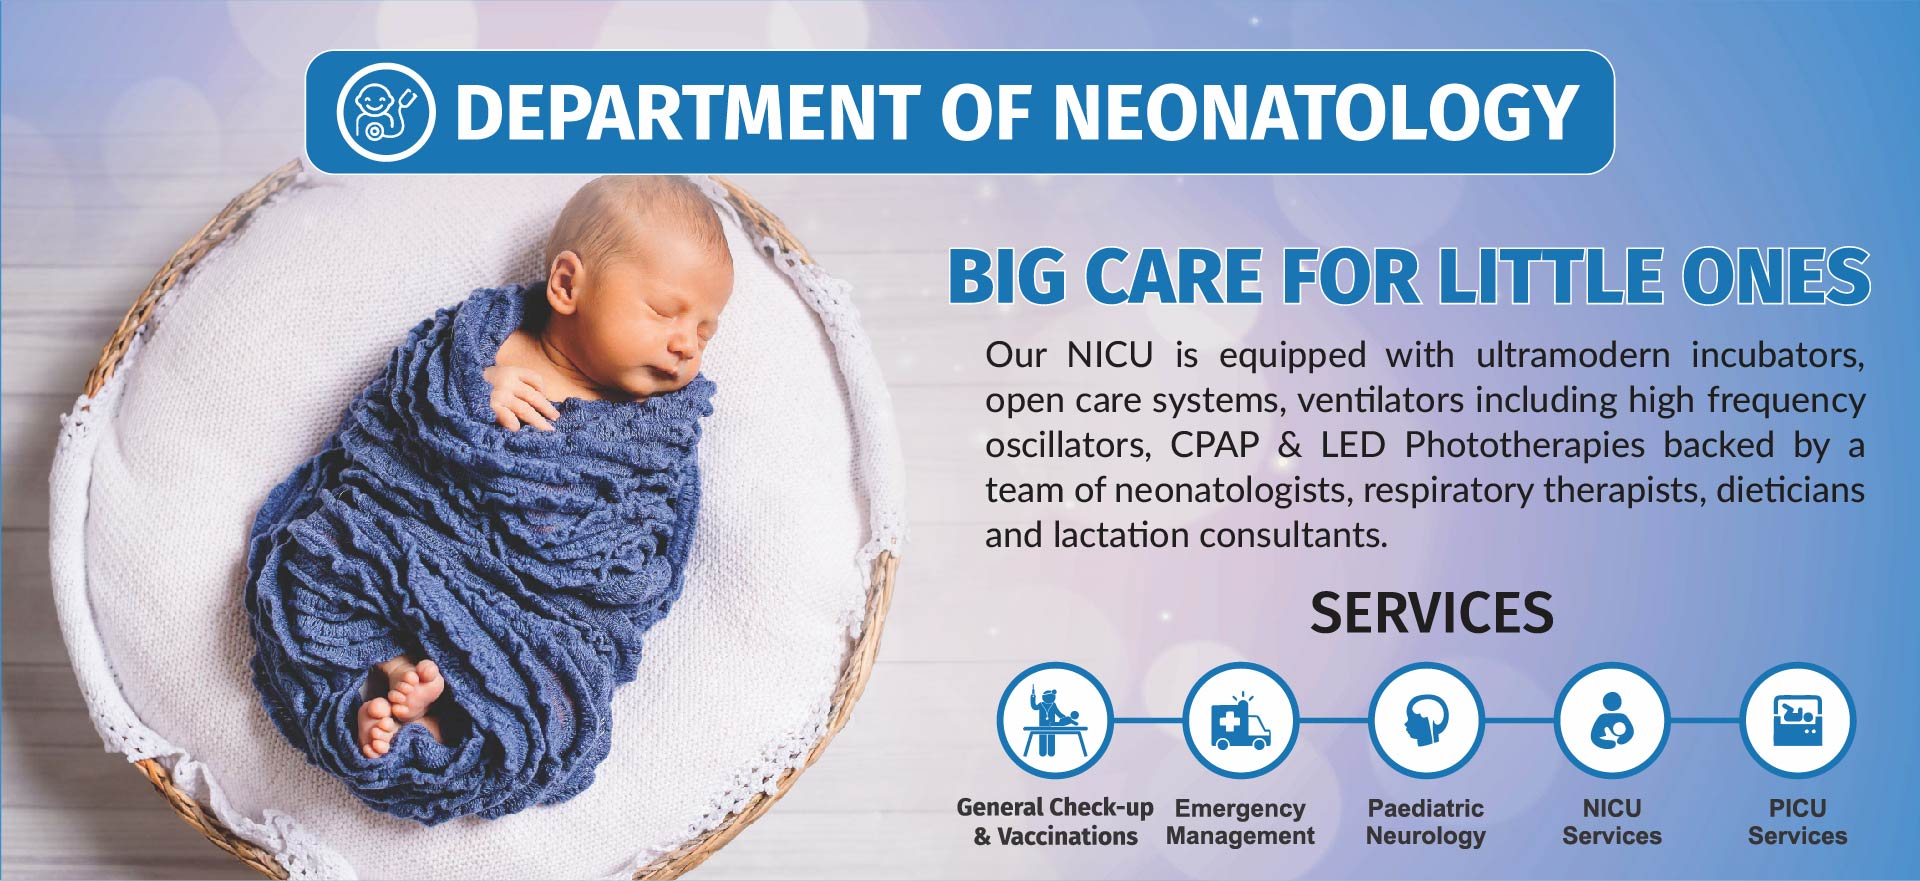 Department Of Neonatology